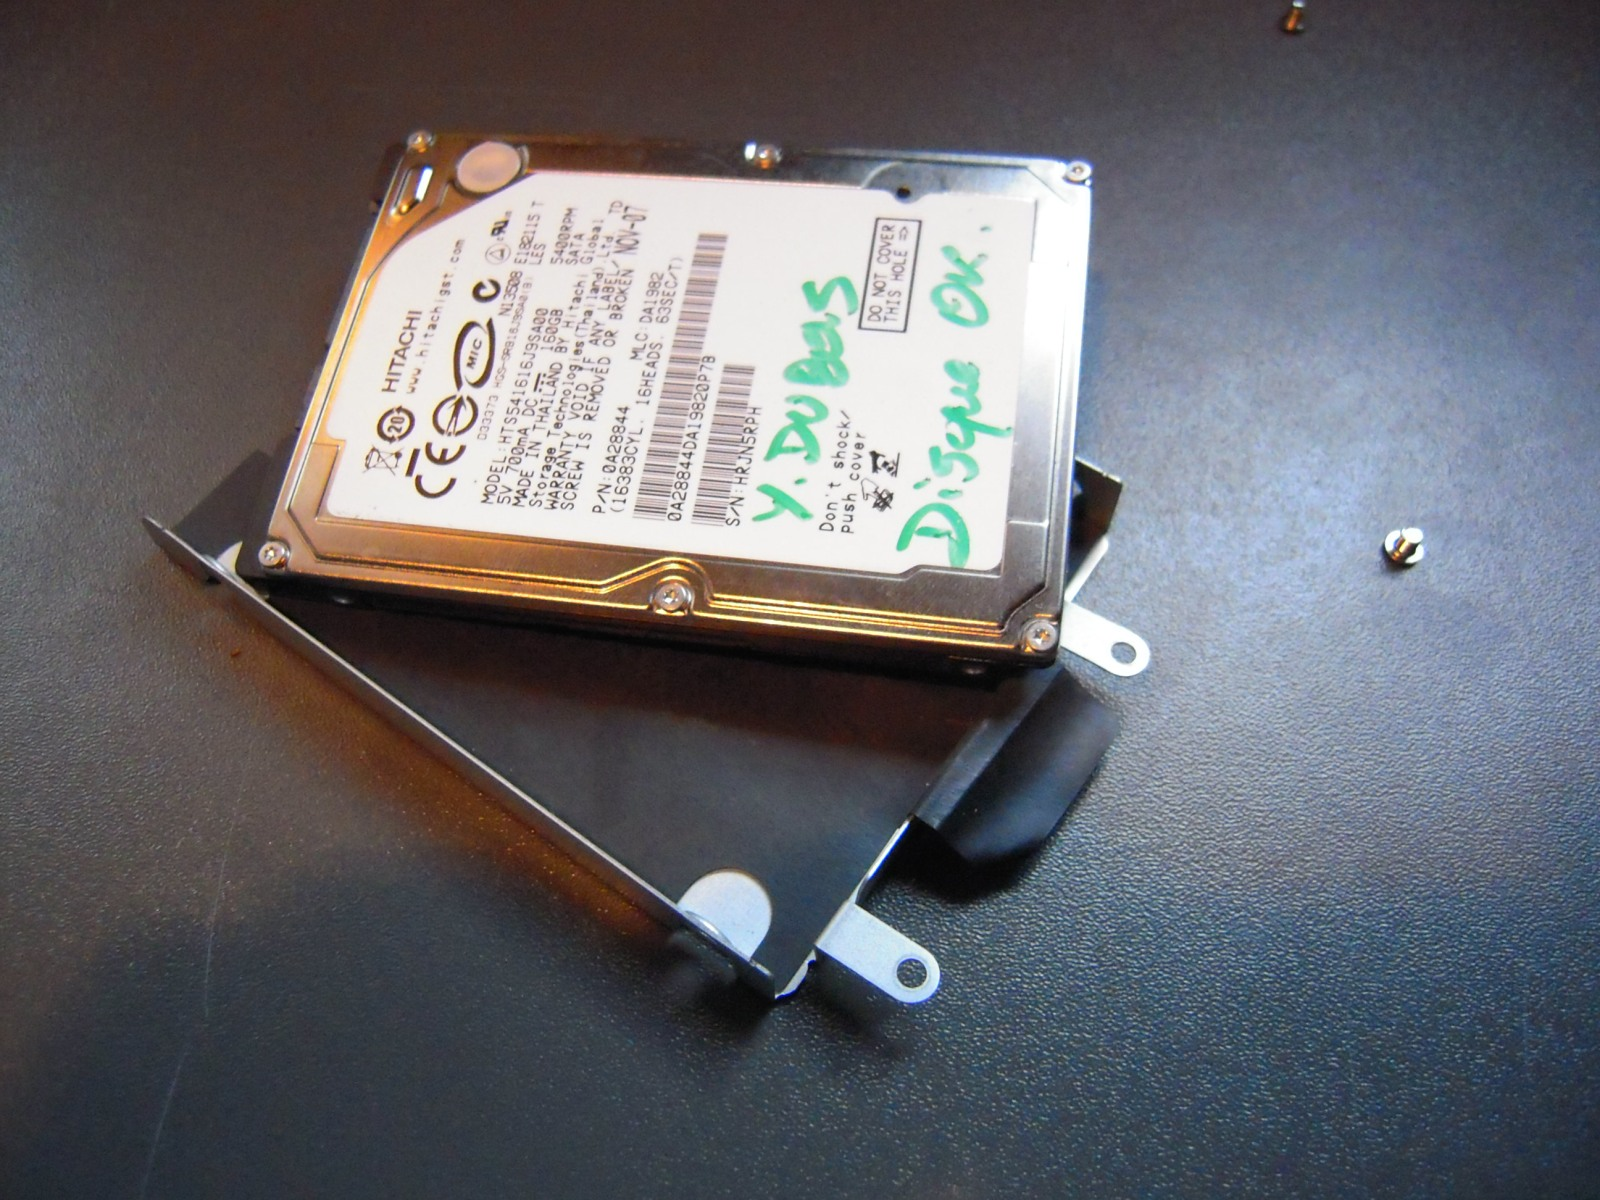 Taking apart a Sony VAIO to replace the hard disk drive | Yann